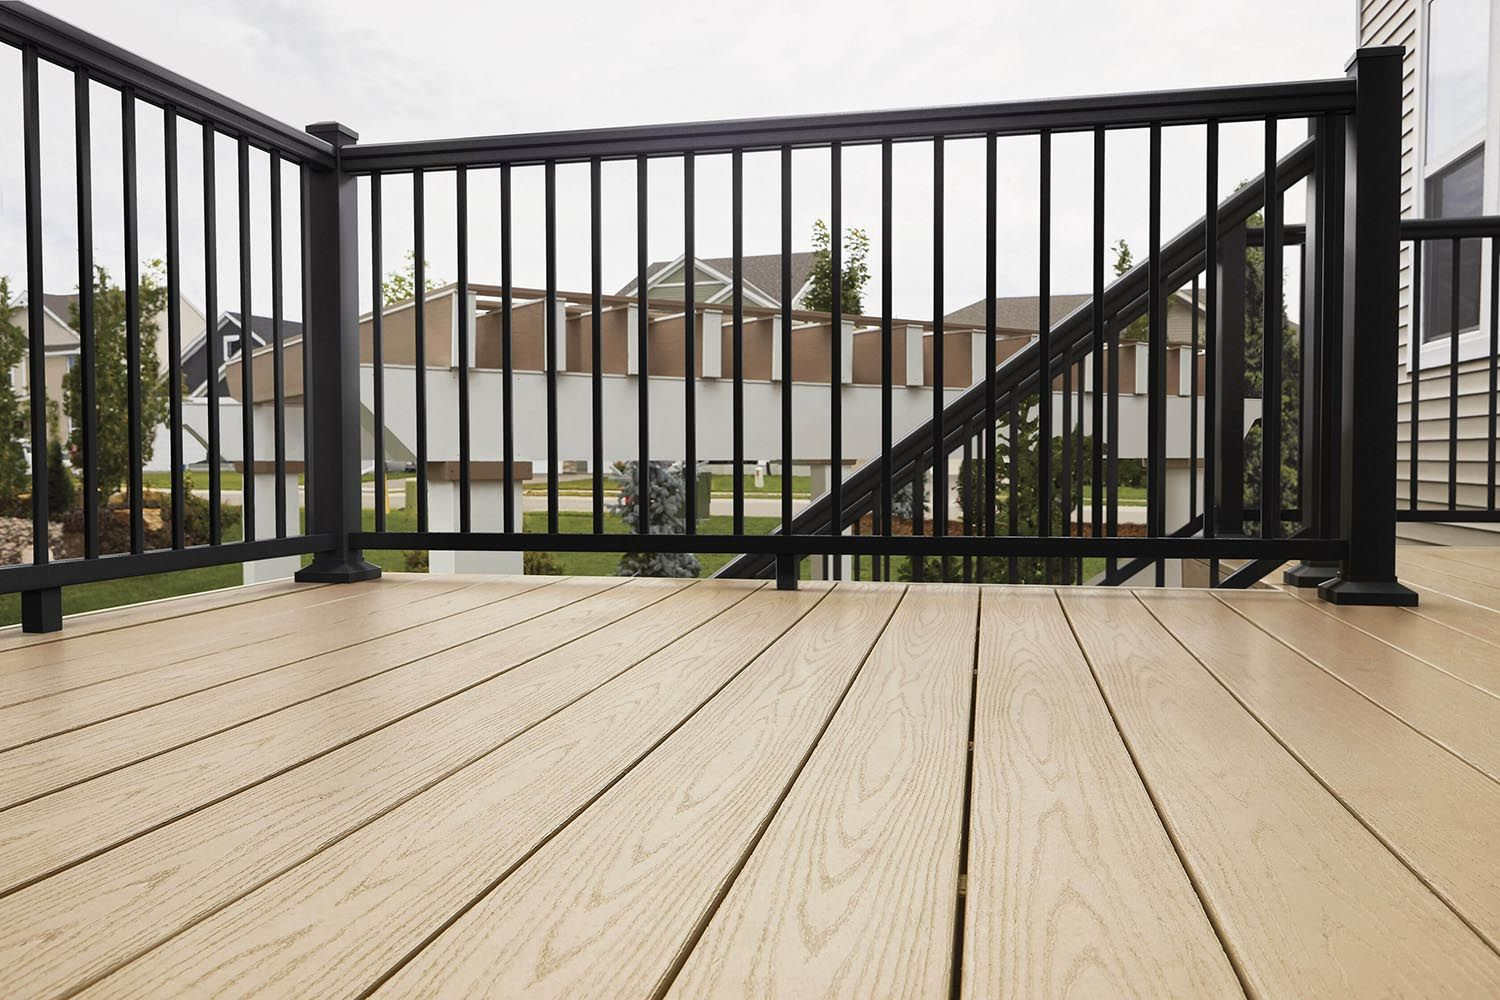 Baluster Spacing Calculator Decks Com Online Calculator To Project How Many Balusters Will Be Needed Deck Railing Design Baluster Spacing Building A Deck